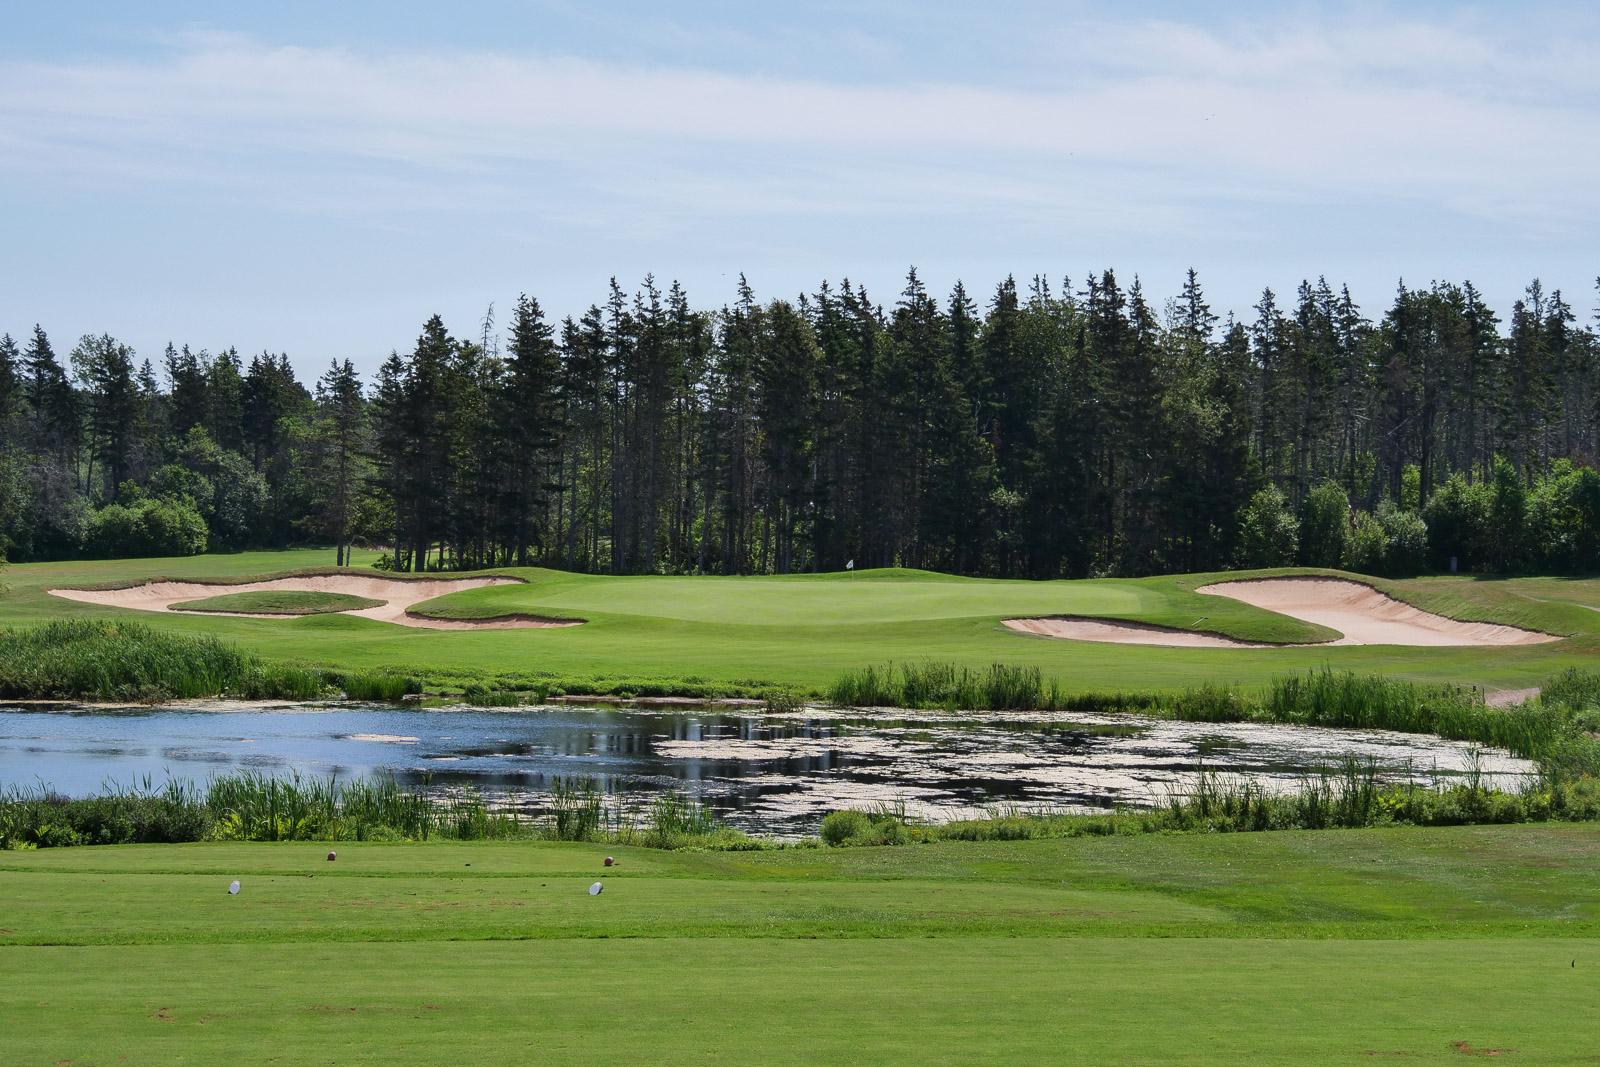 The massive par 3, 16th at Green Gables. One of my favorite holes on the island.